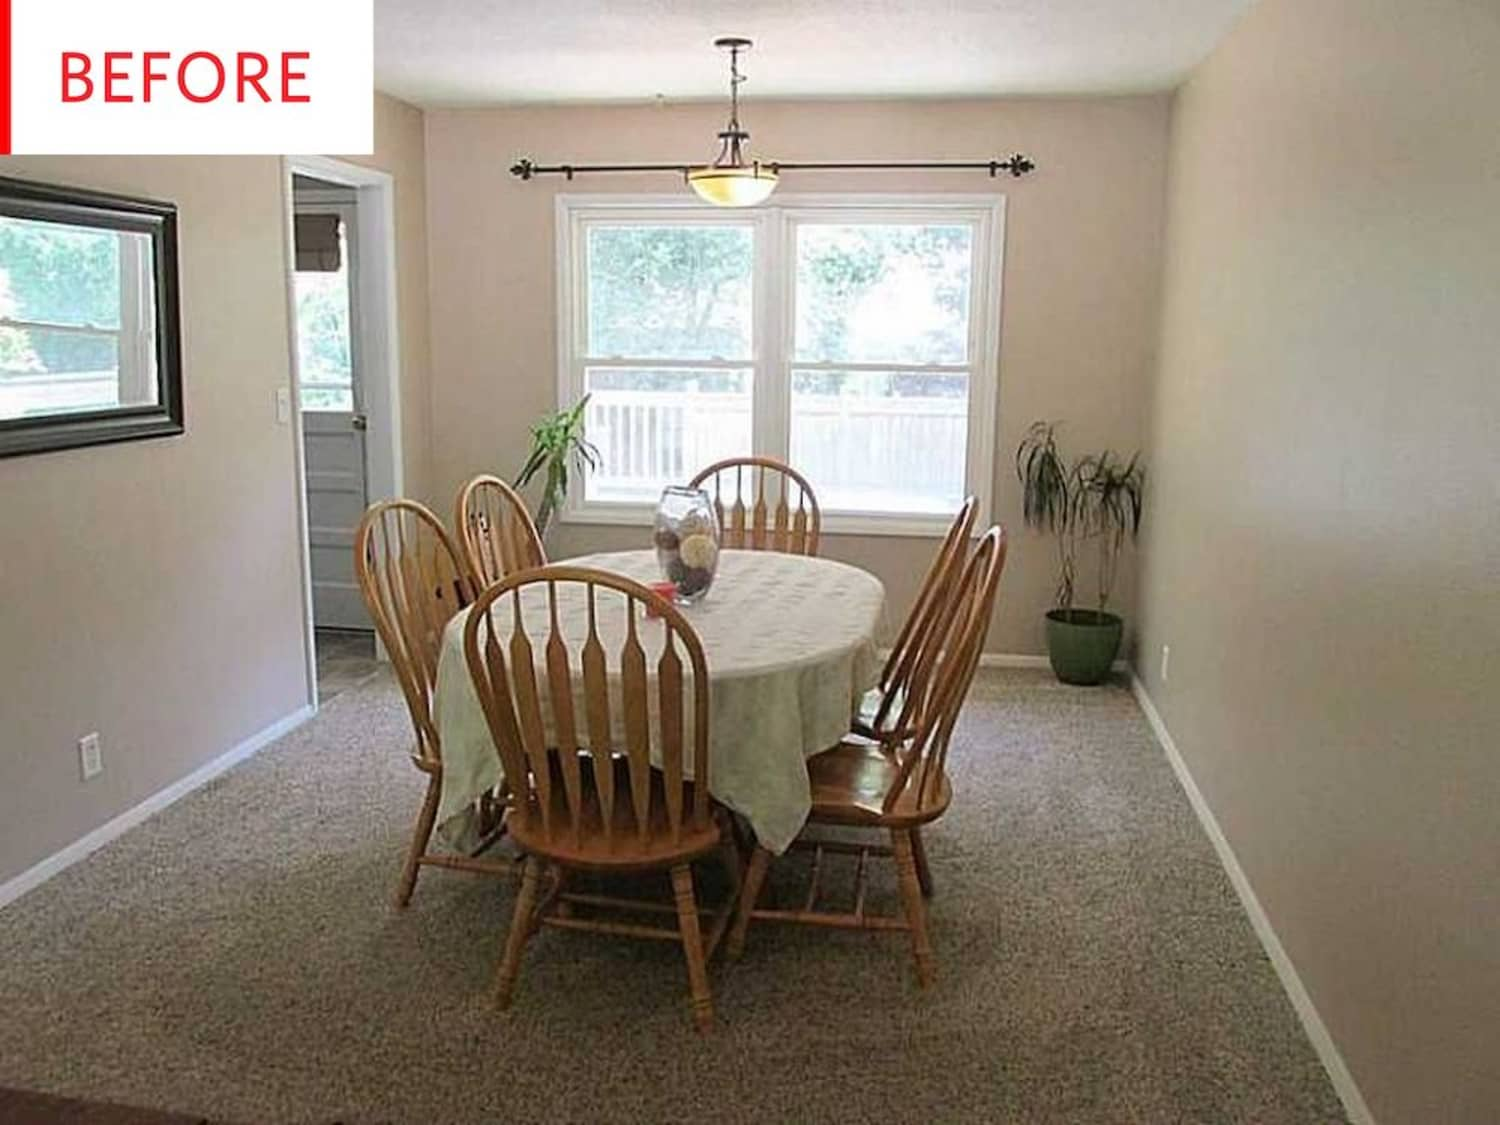 Before & After: You Won't Believe How Wonderfully This Inexpensive Dining Room Refresh Came Together